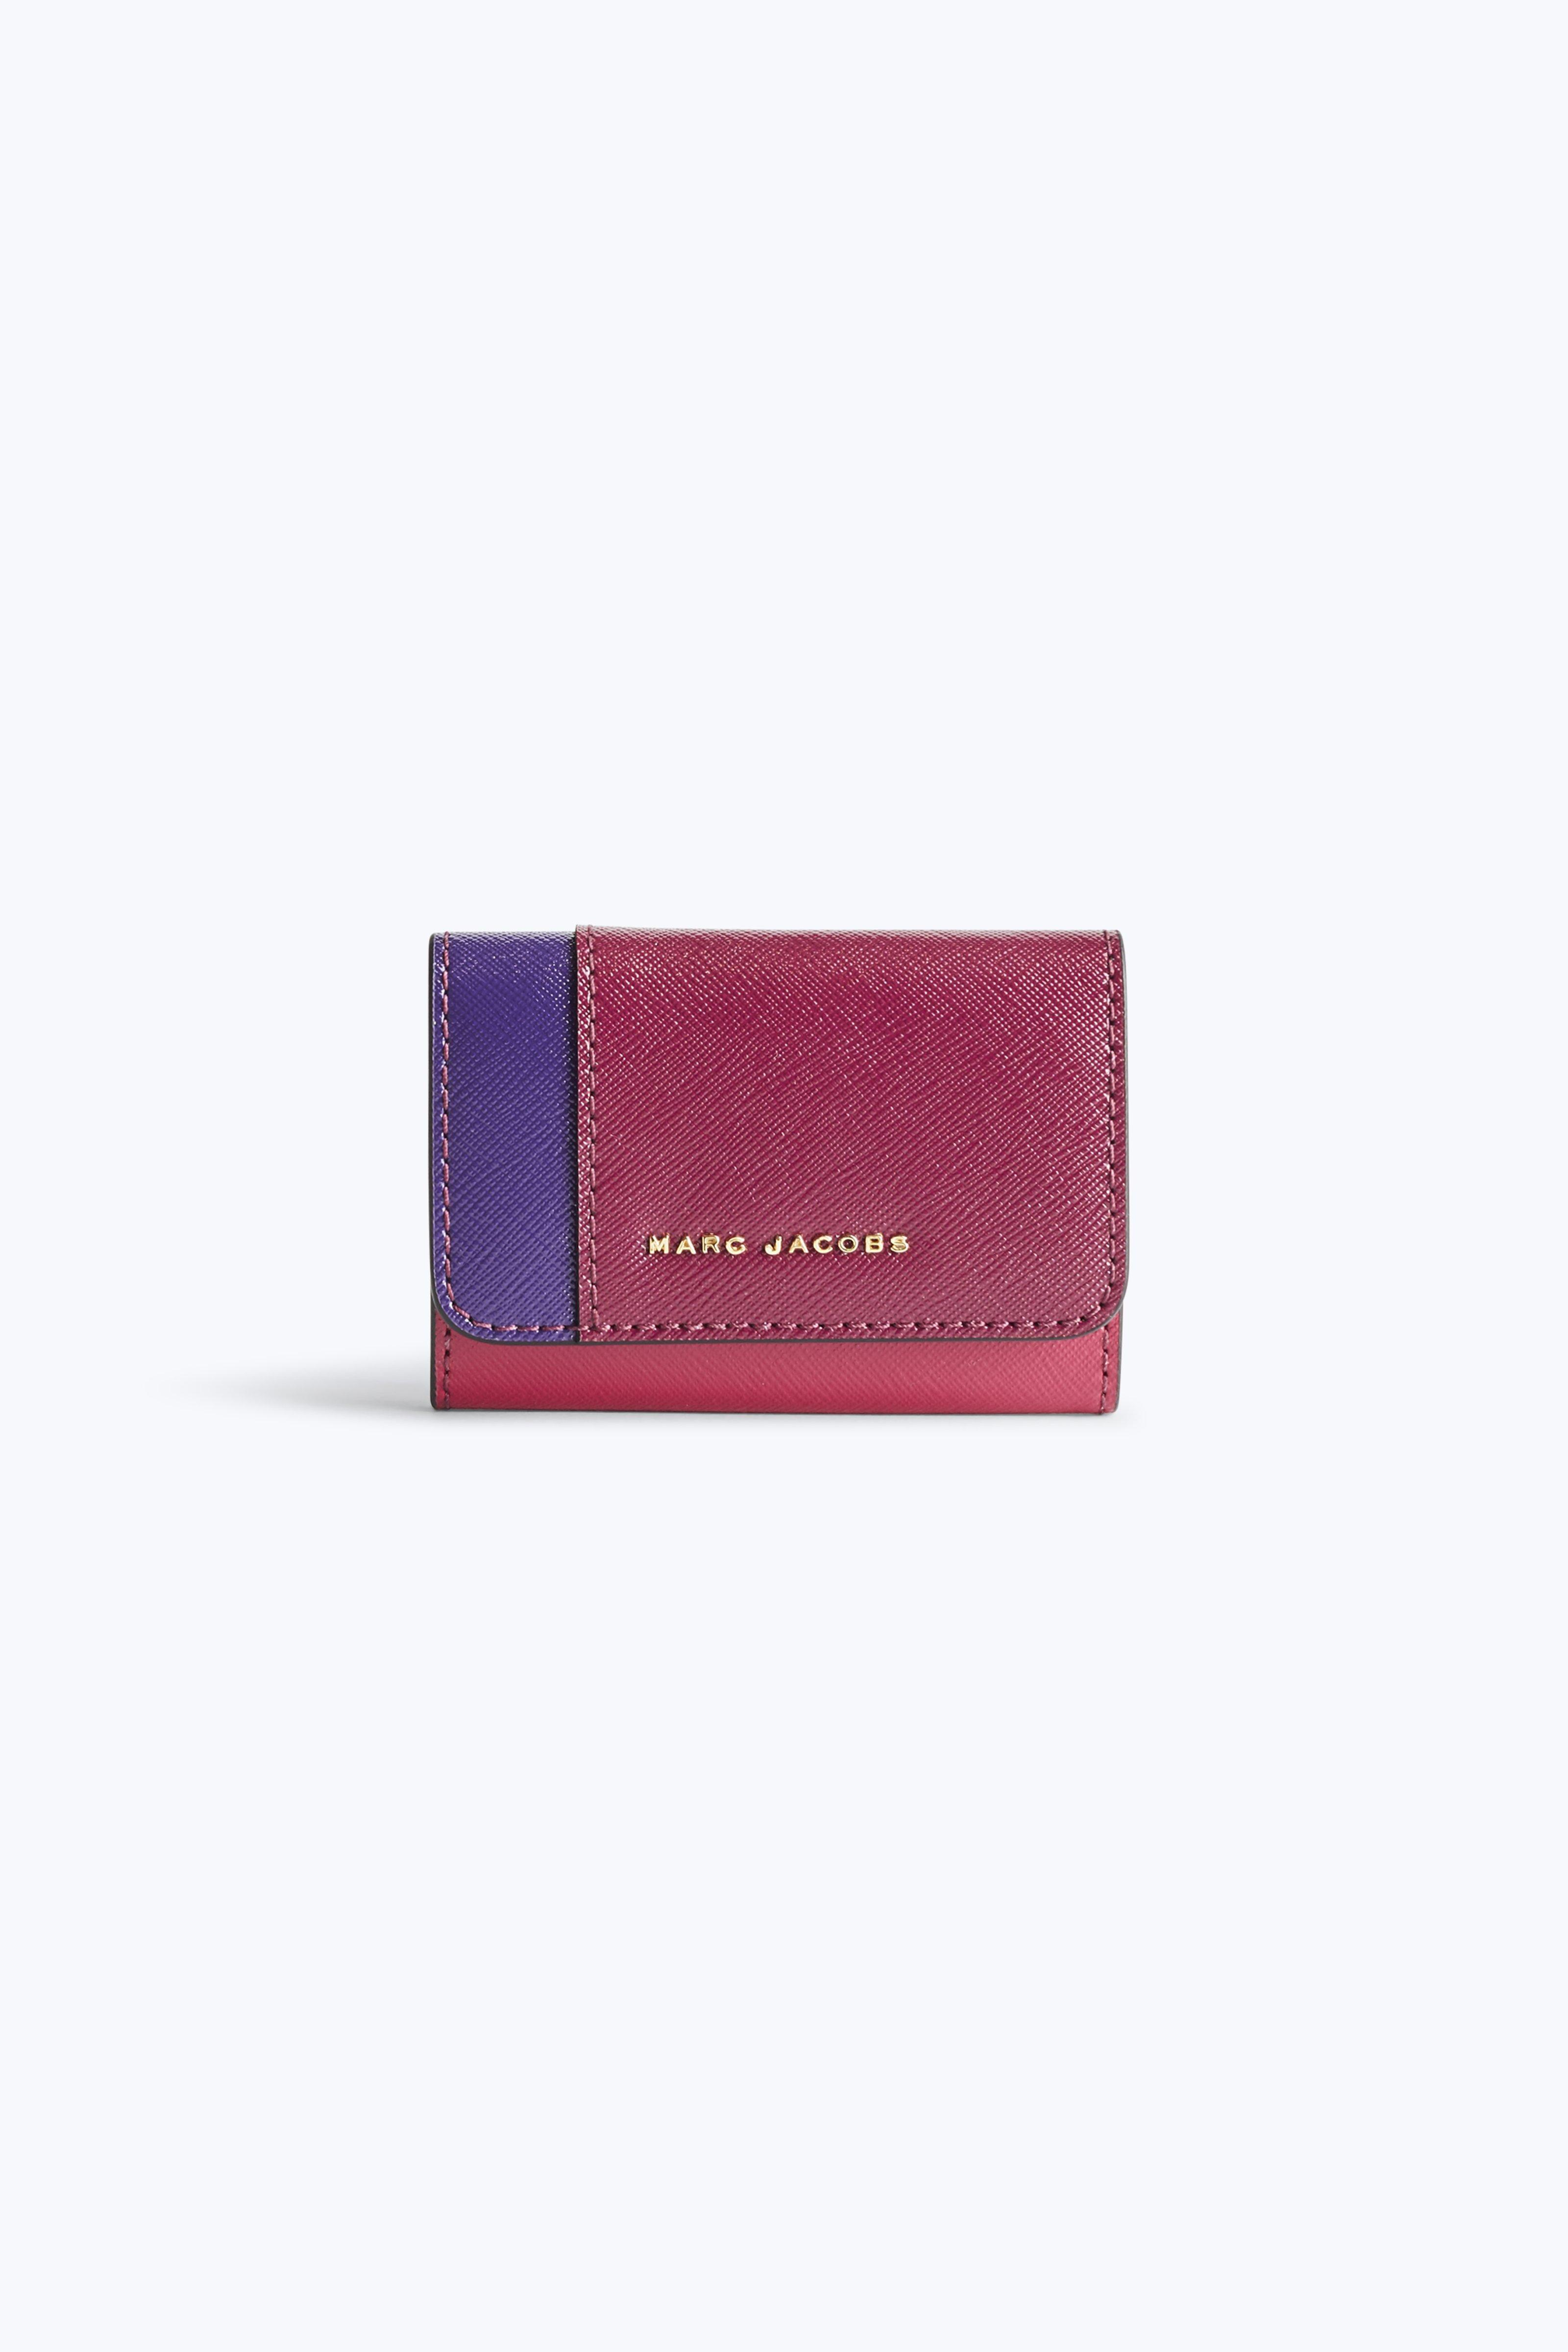 Marc Jacobs Saffiano Colorblocked Key Case In Berry Multi